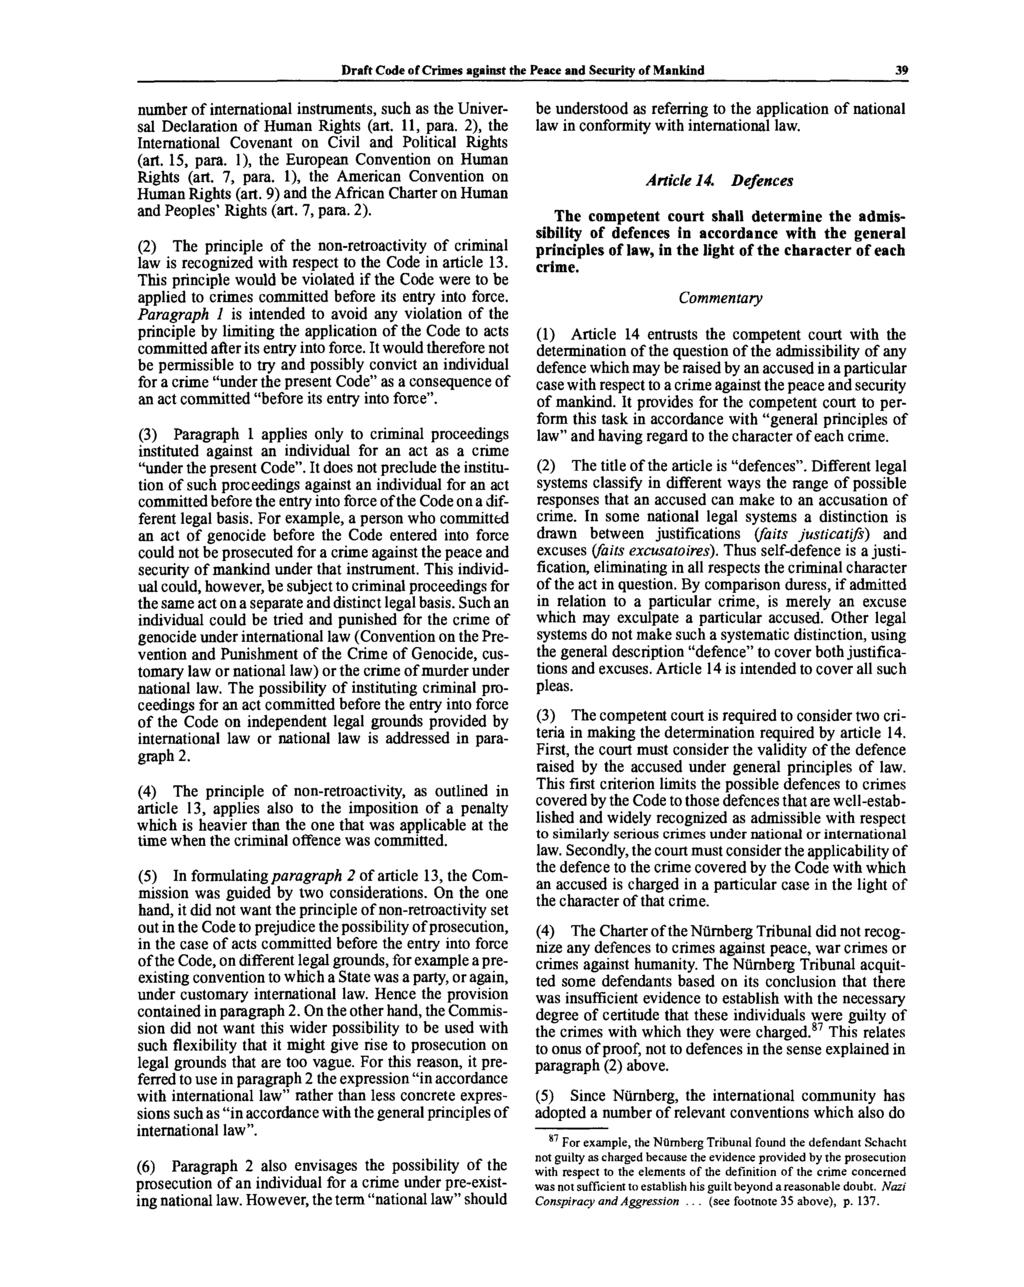 Draft Code of Crimes against the Peace and Security of Mankind 39 number of international instruments, such as the Universal Declaration of Human Rights (art. 11, para.